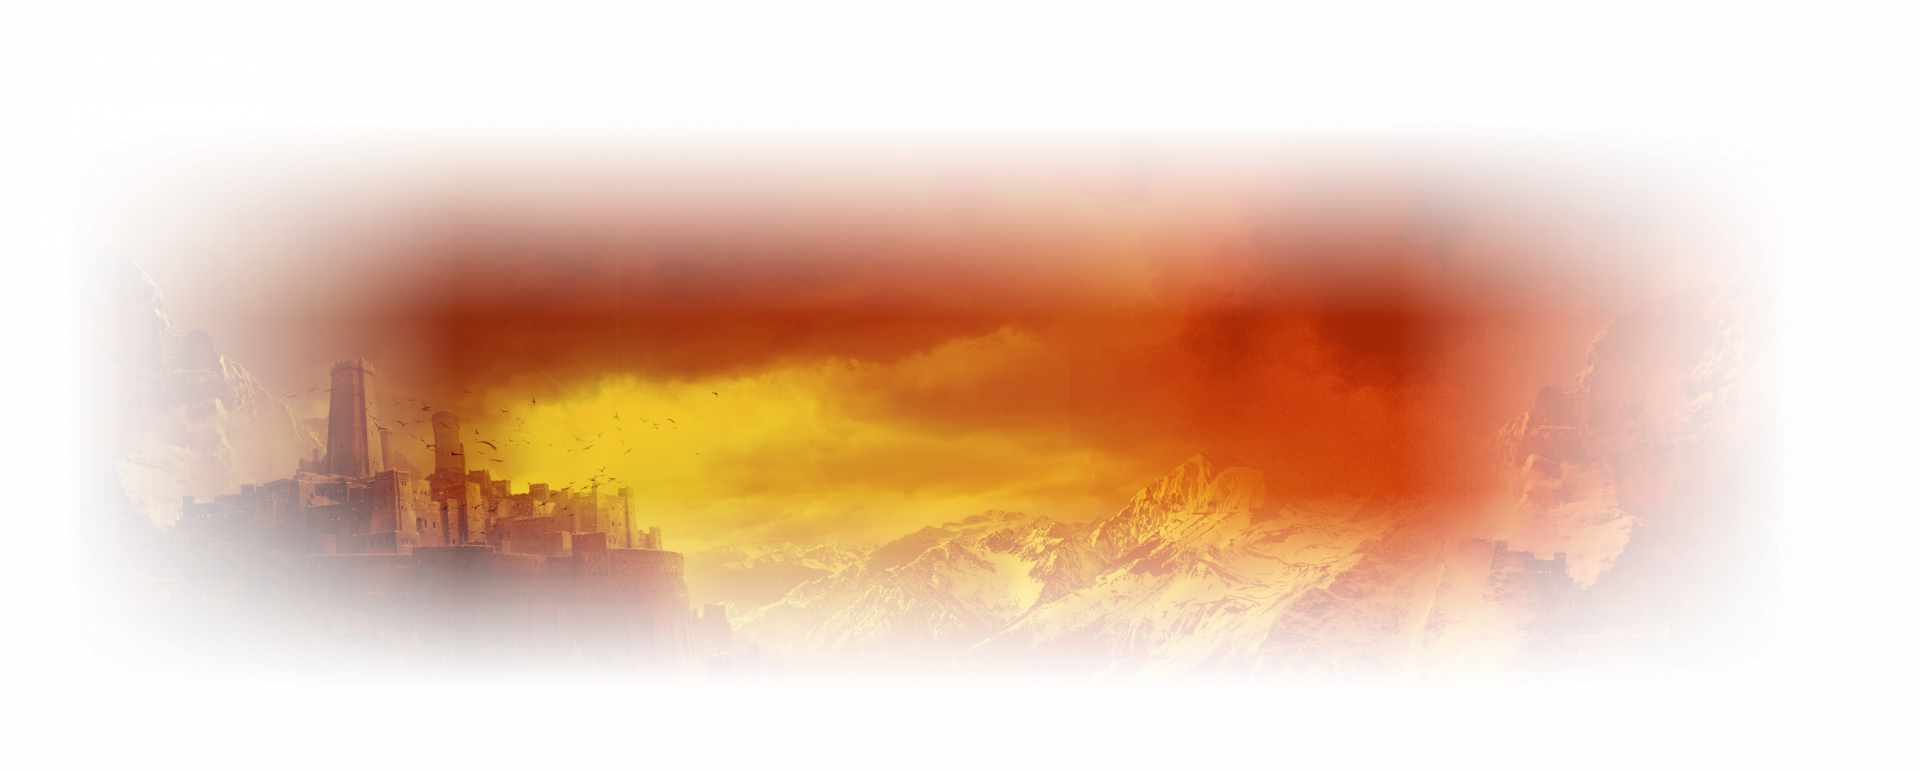 AOCG_G2_FV_FW_IPS_BACKGROUND.png